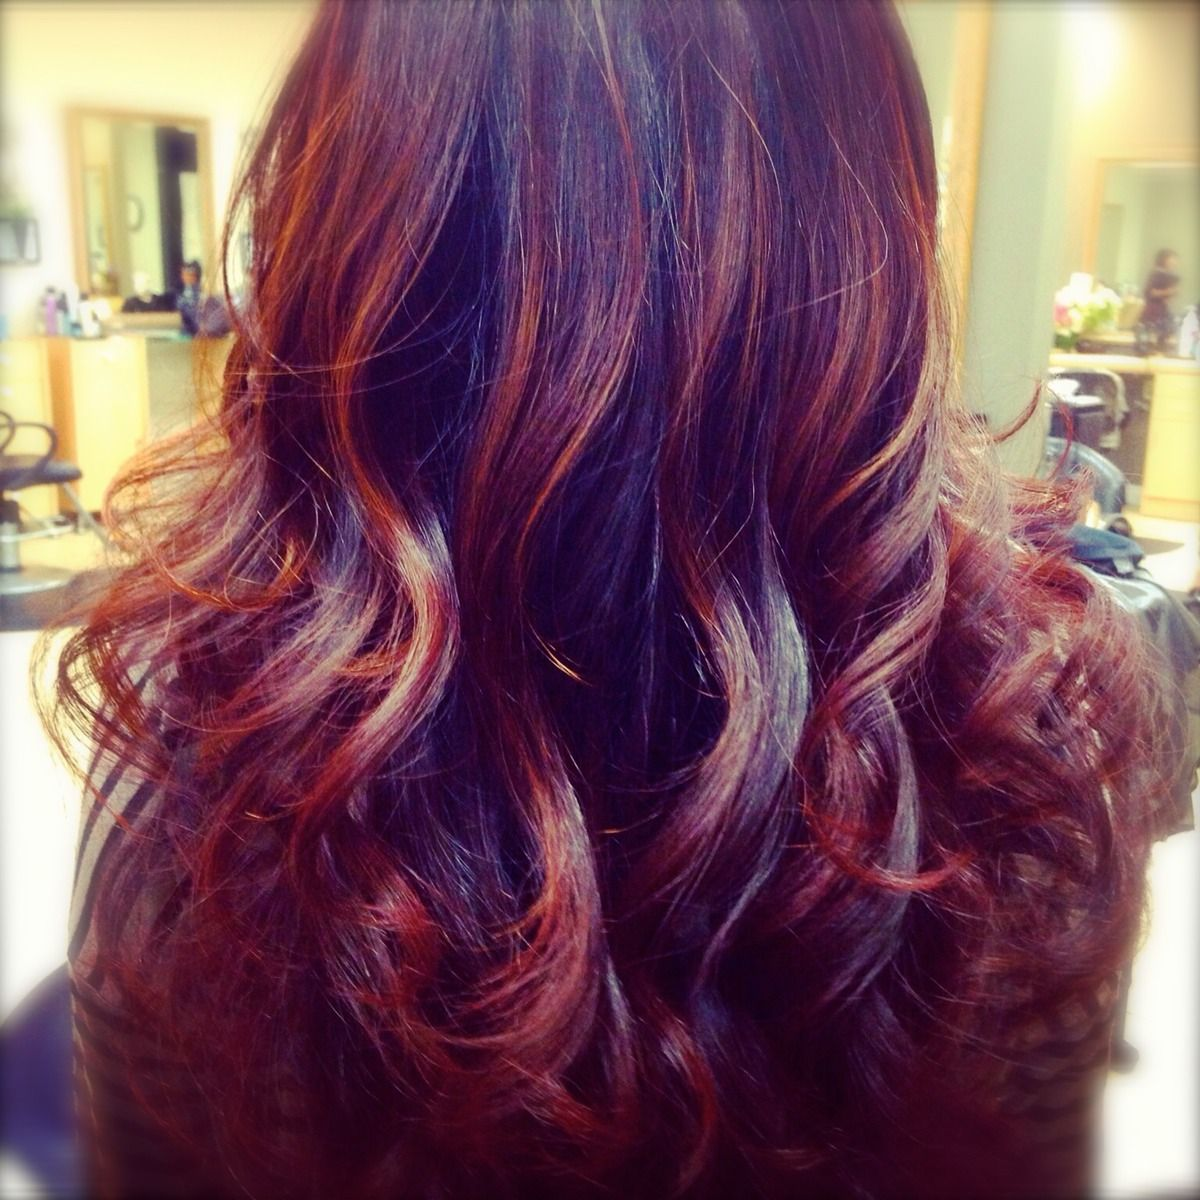 Cherry cola hair color google search hair pinterest cherry cherry cola hair color google search do it yourselfhair solutioingenieria Gallery